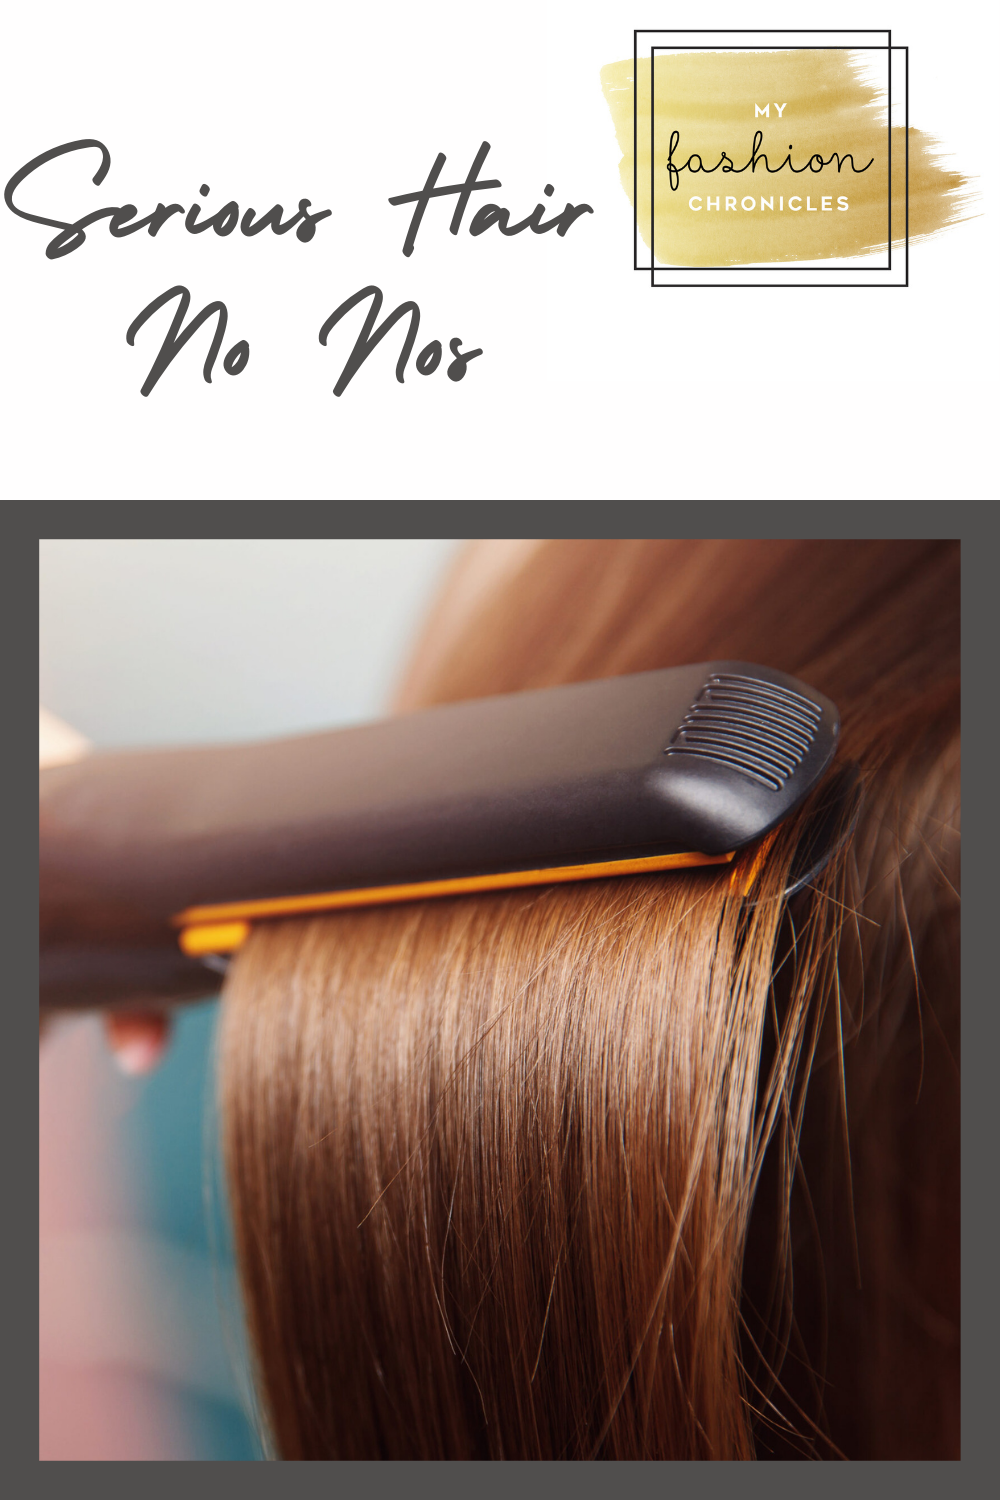 Ladies, we are talking hair no nos! Don't miss the biggest ones that you never want to do. Myfashionchronicles.com has got your back on this one.